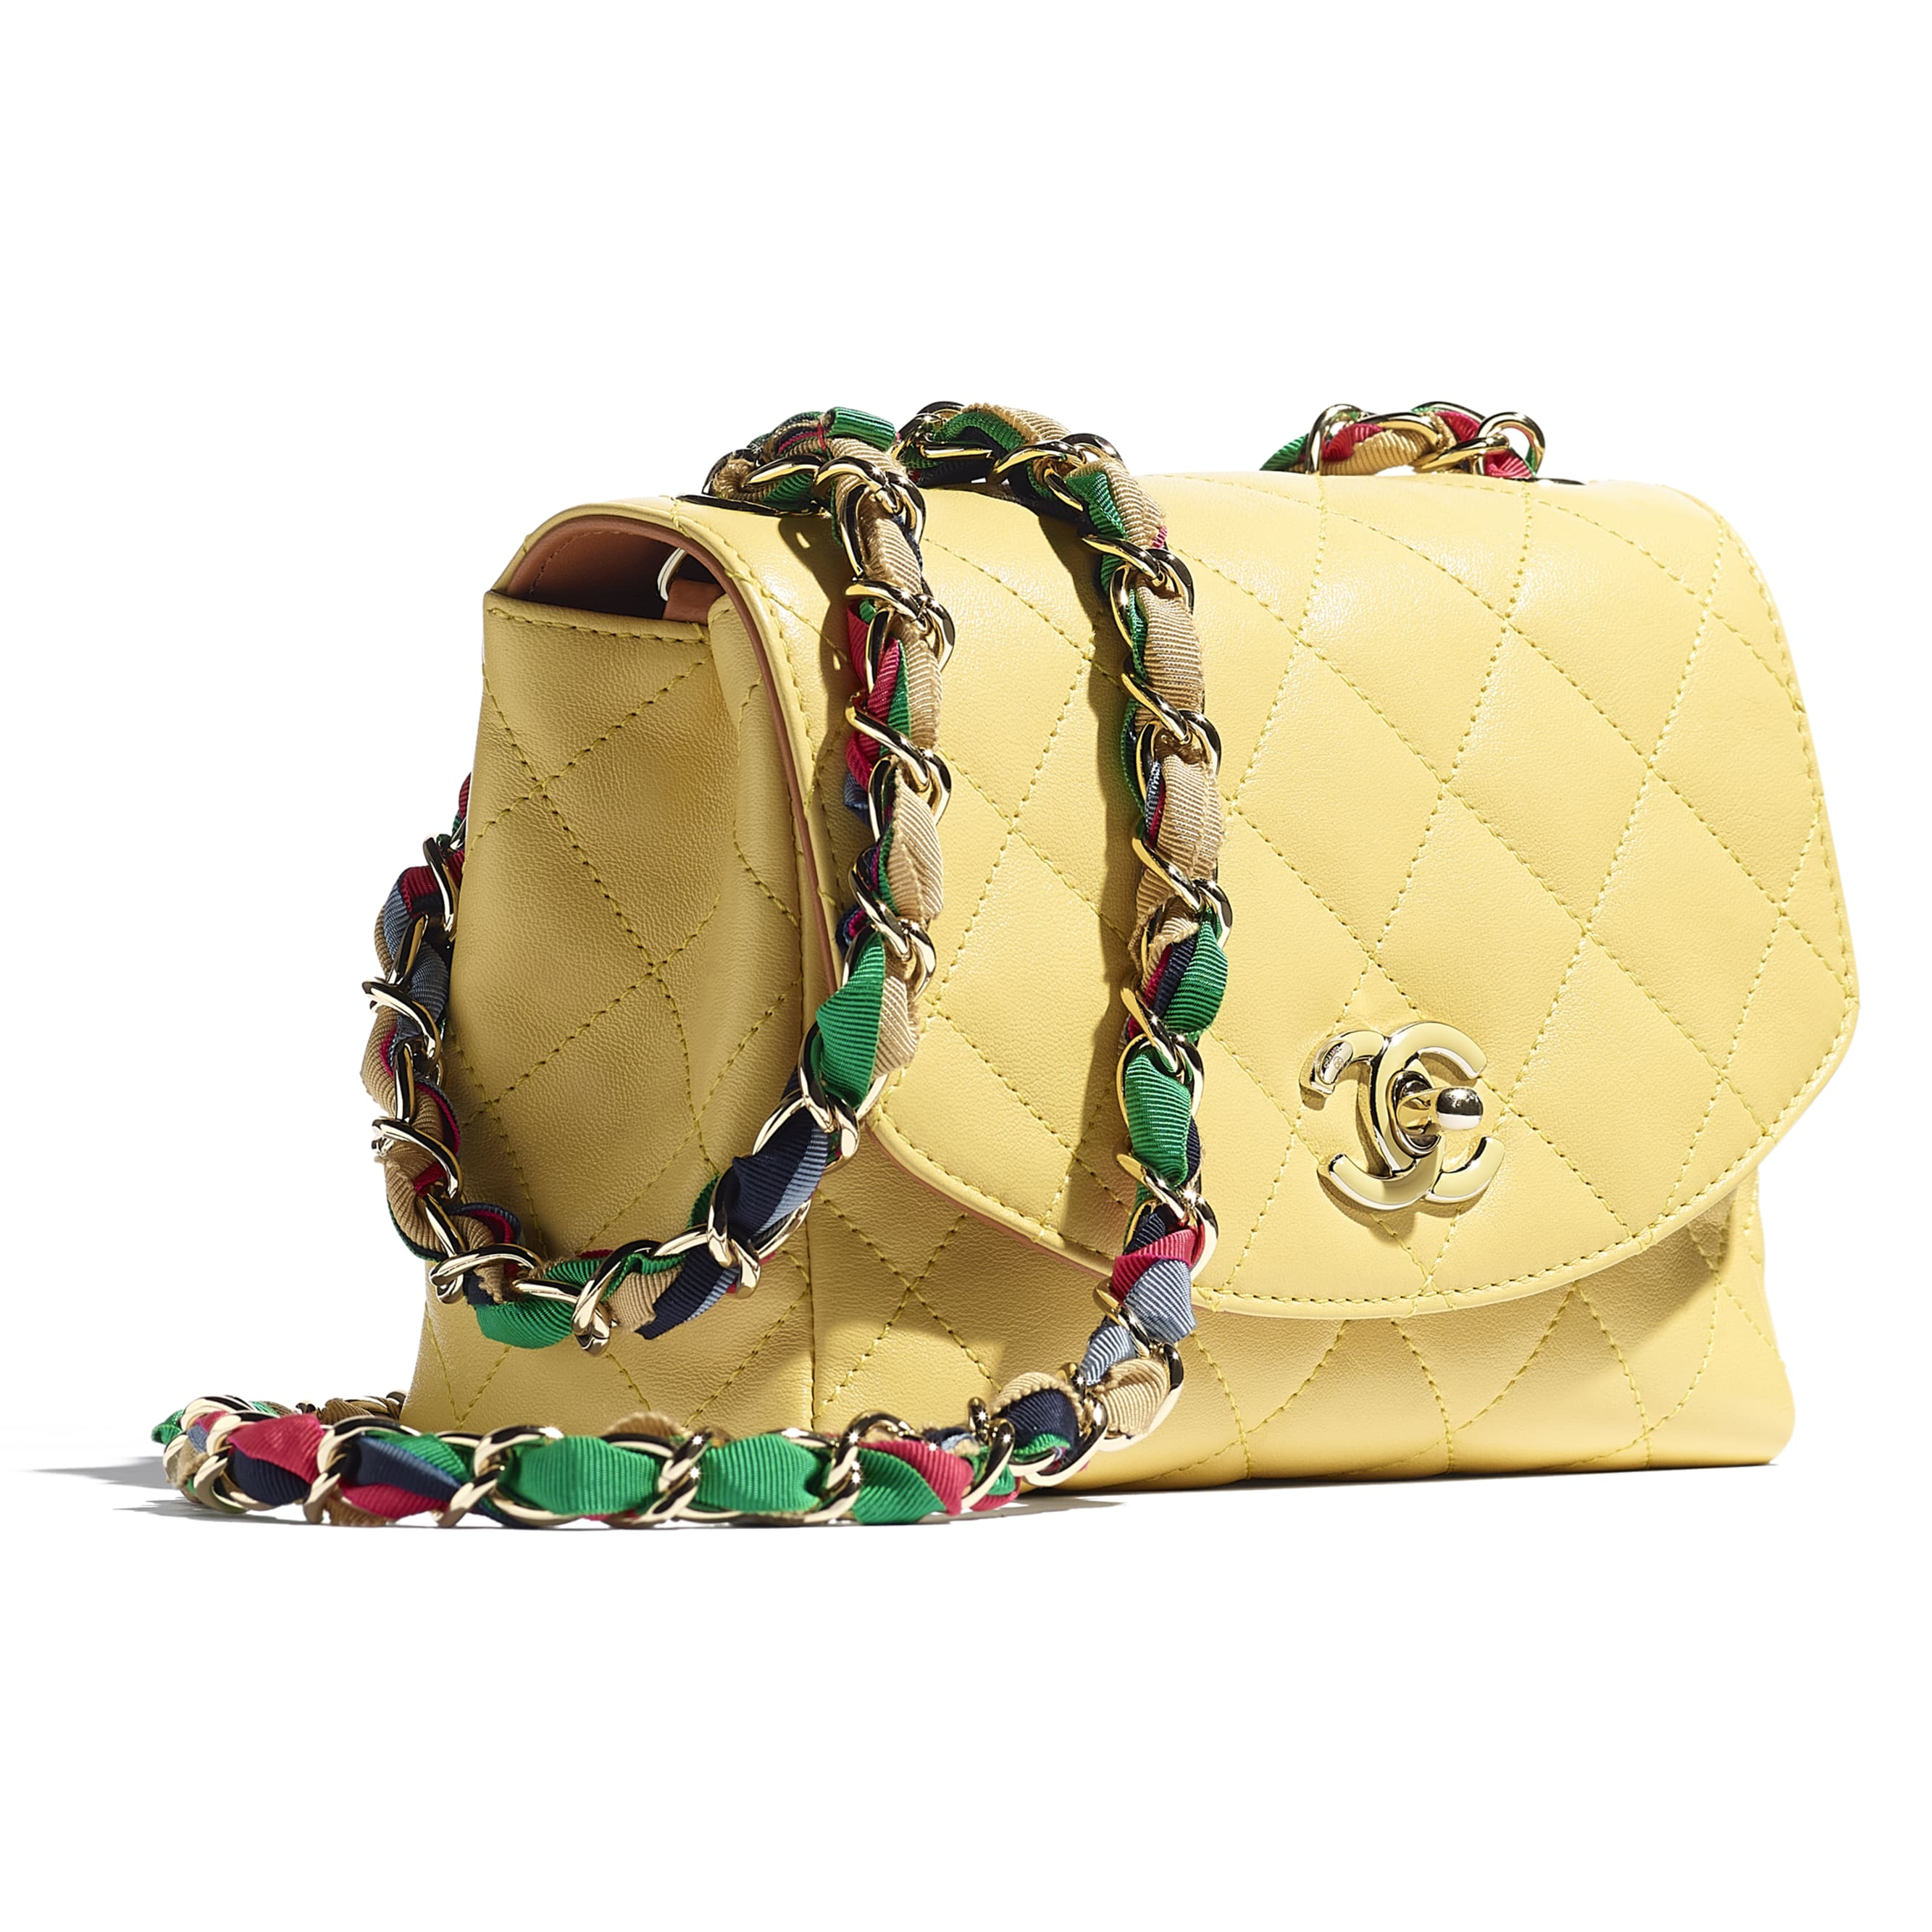 Flap Bag - Yellow - Lambskin, Mixed Fibers & Gold-Tone Metal - CHANEL - Extra view - see standard sized version